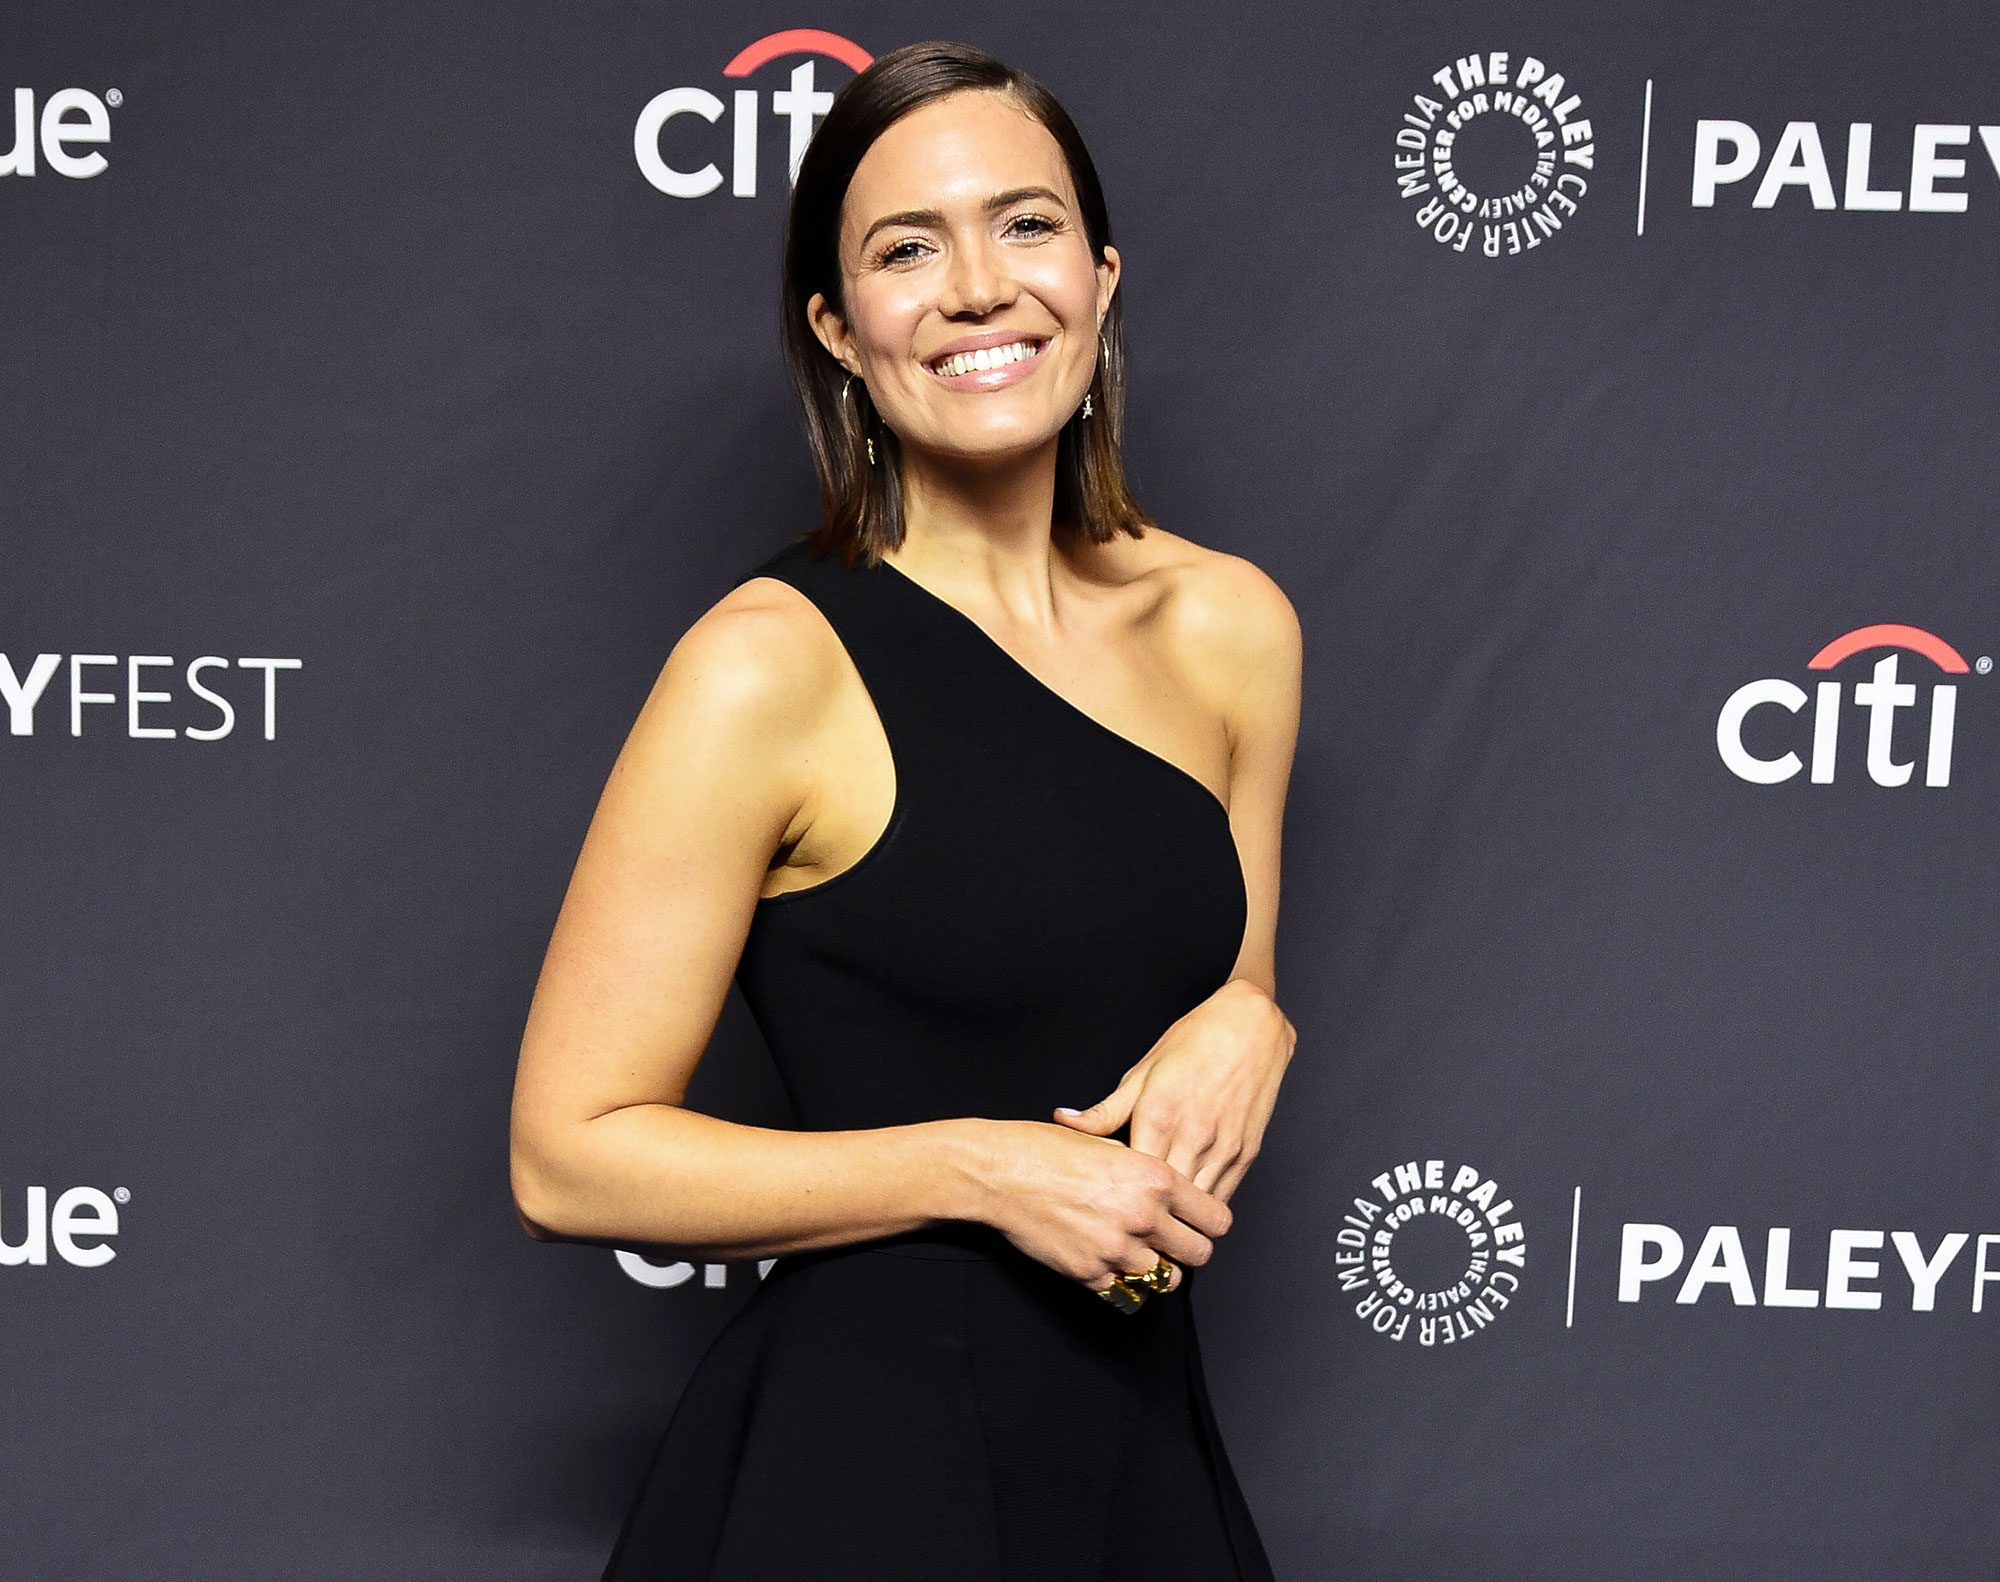 Mandy Moore Shares Taken Away Ryan Adams Psychological Abuse - Mandy Moore attends The Paley Center For Media's PaleyFest LA – 'This Is Us' at Dolby Theatre on March 24, 2019.